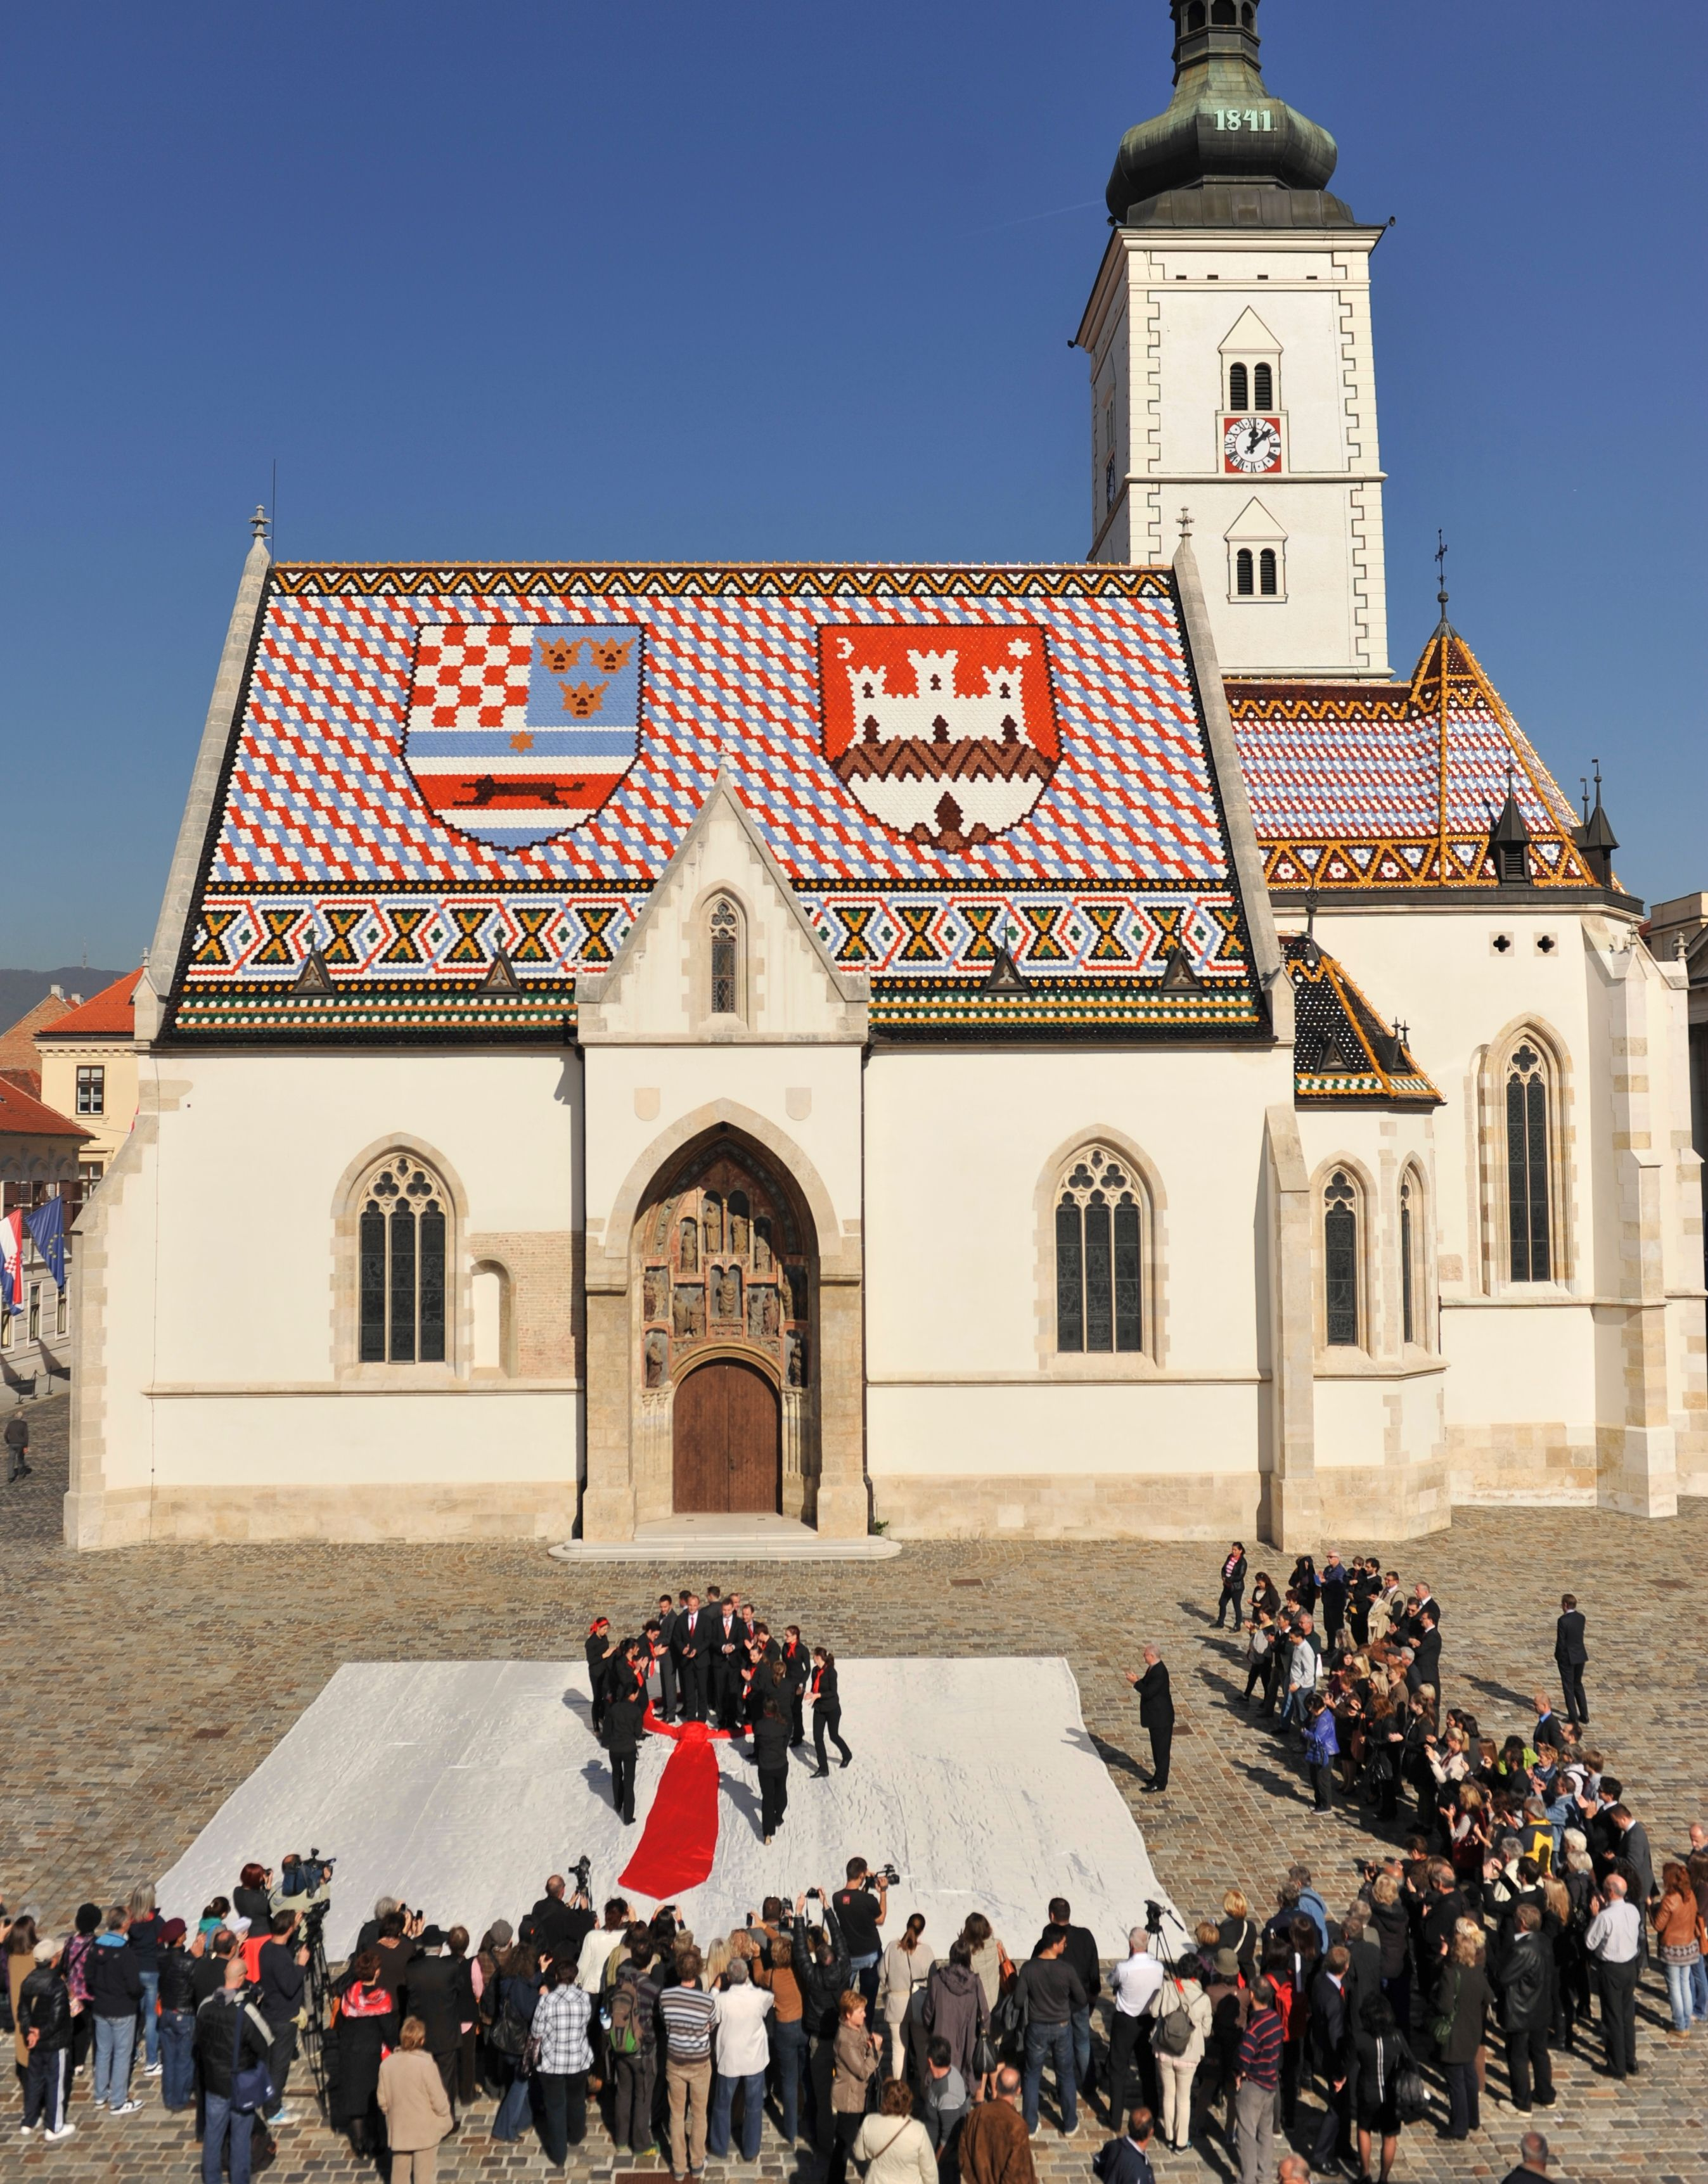 An Attractive Ceremony Was Held On October 18th At St Mark S Square In Zagreb On The Occasion Of The Cravat Day The Central Part Zagreb House Styles Croatia